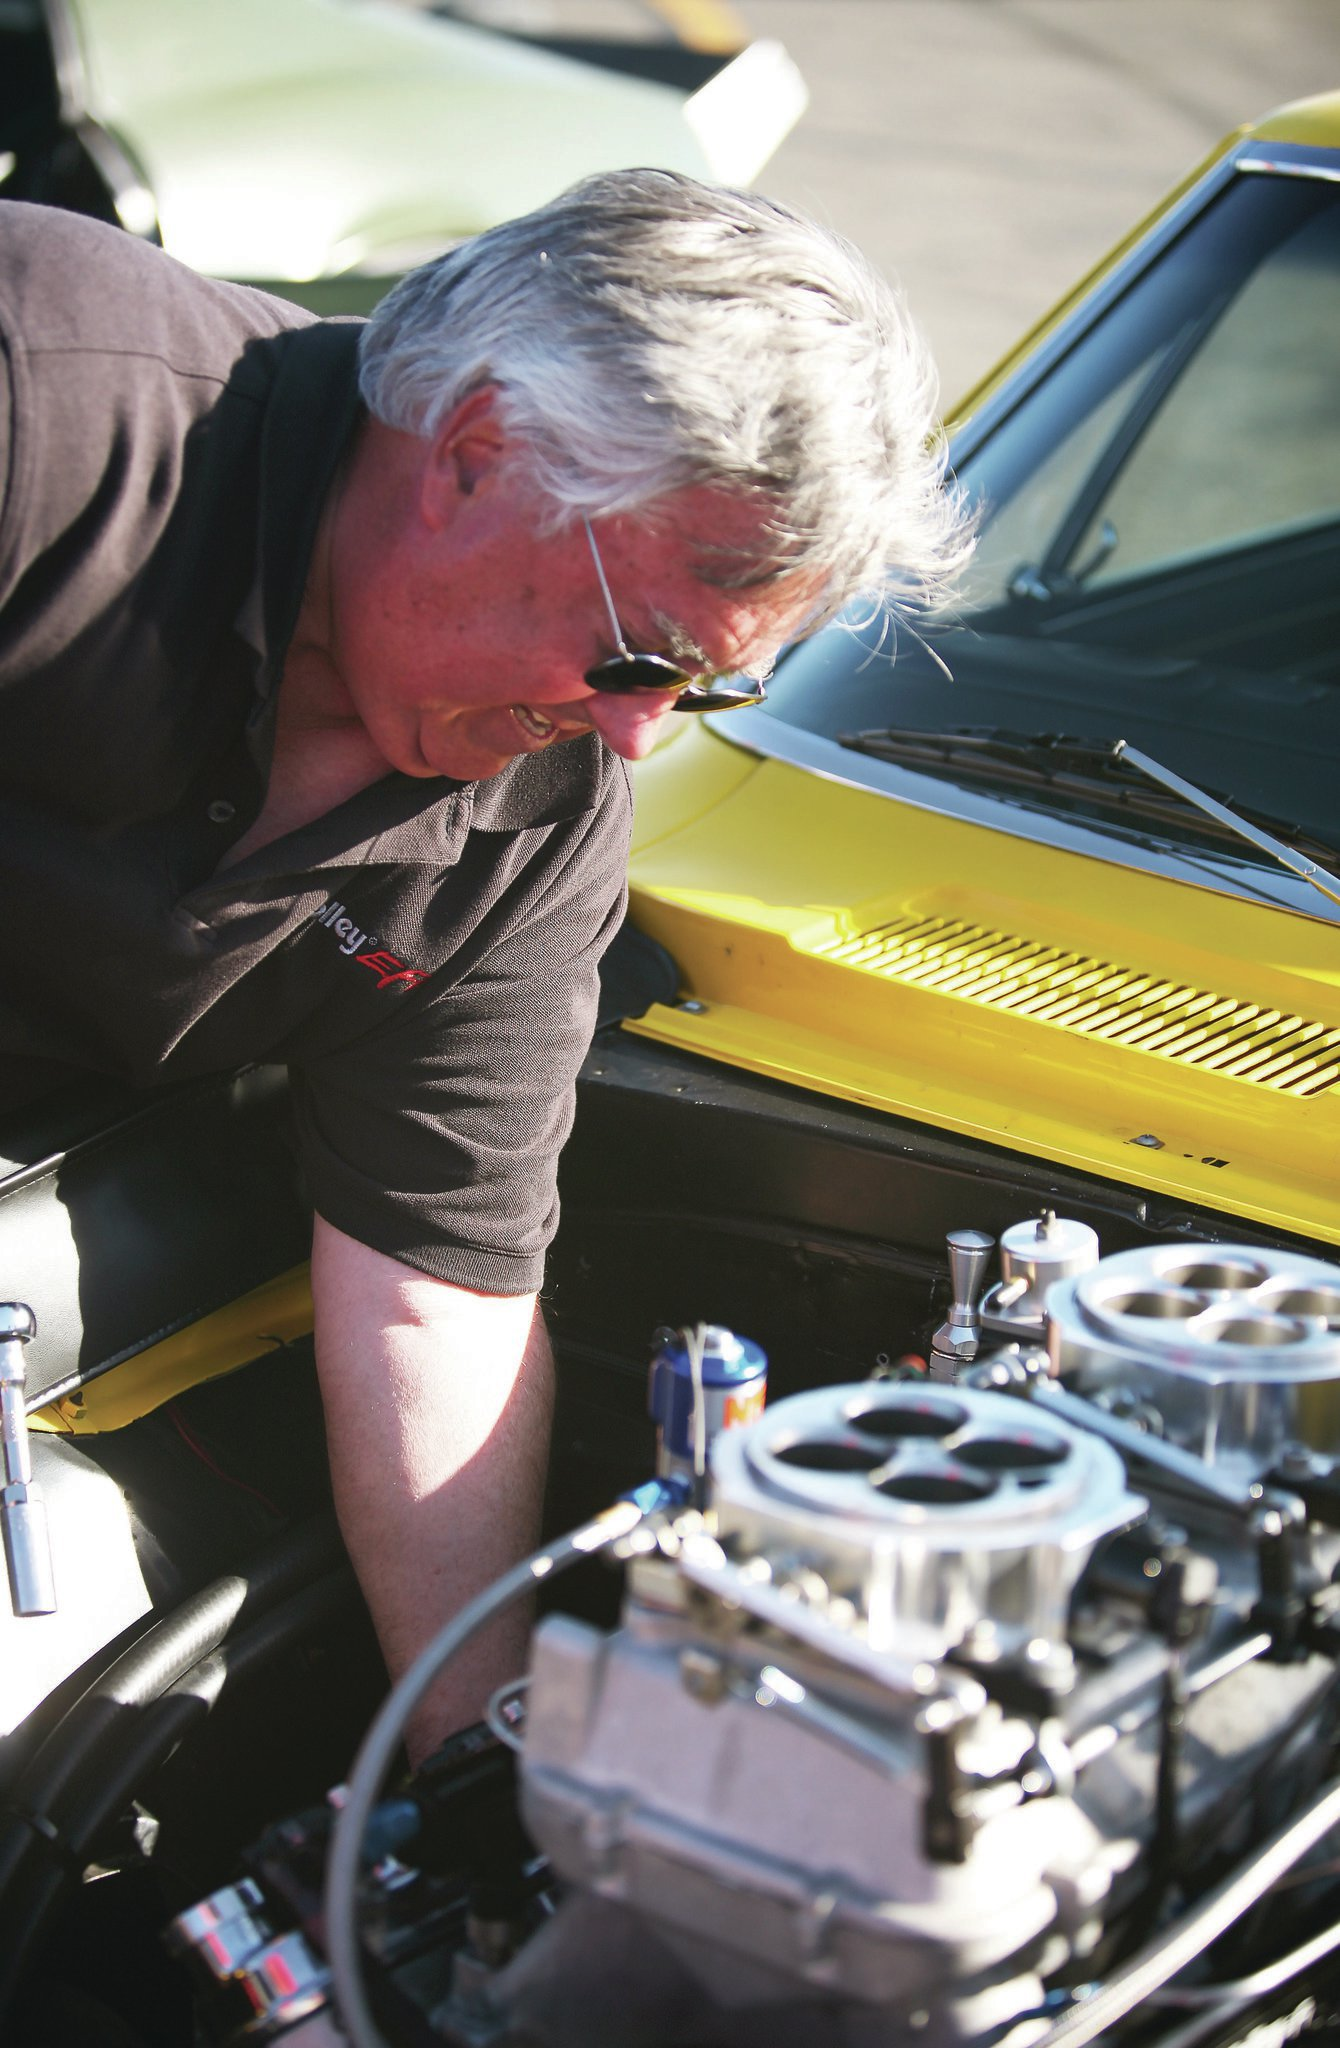 Robin Lawrence from Holley Performance helped dial in the enrichment for the nitrous system. Here he is reading plugs in the Mast Motorsports LS7.